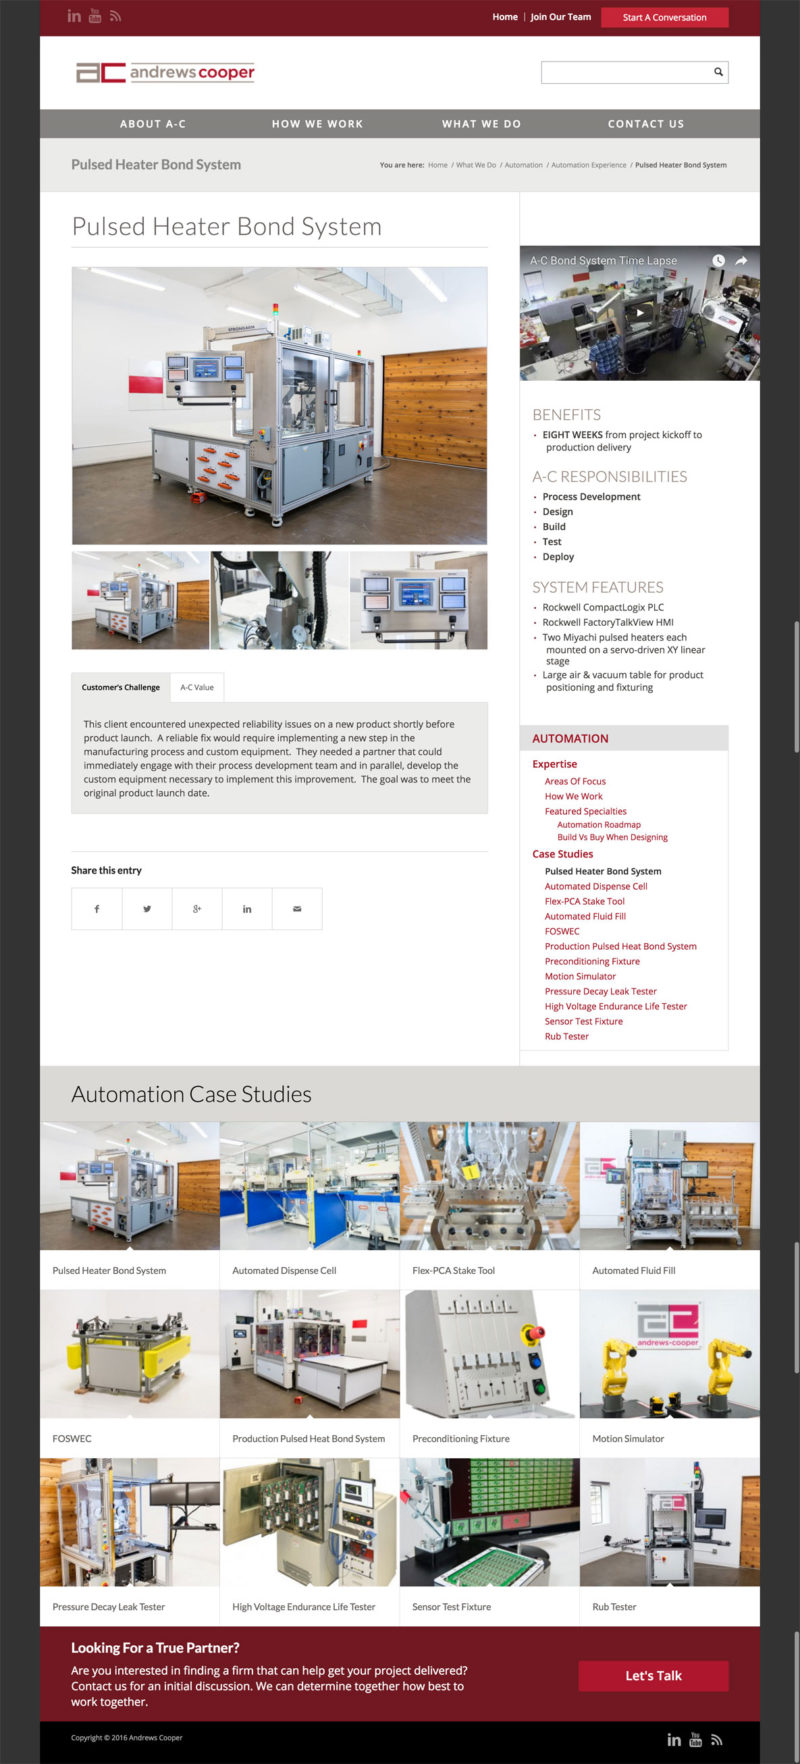 Andrews Cooper Case Study Page